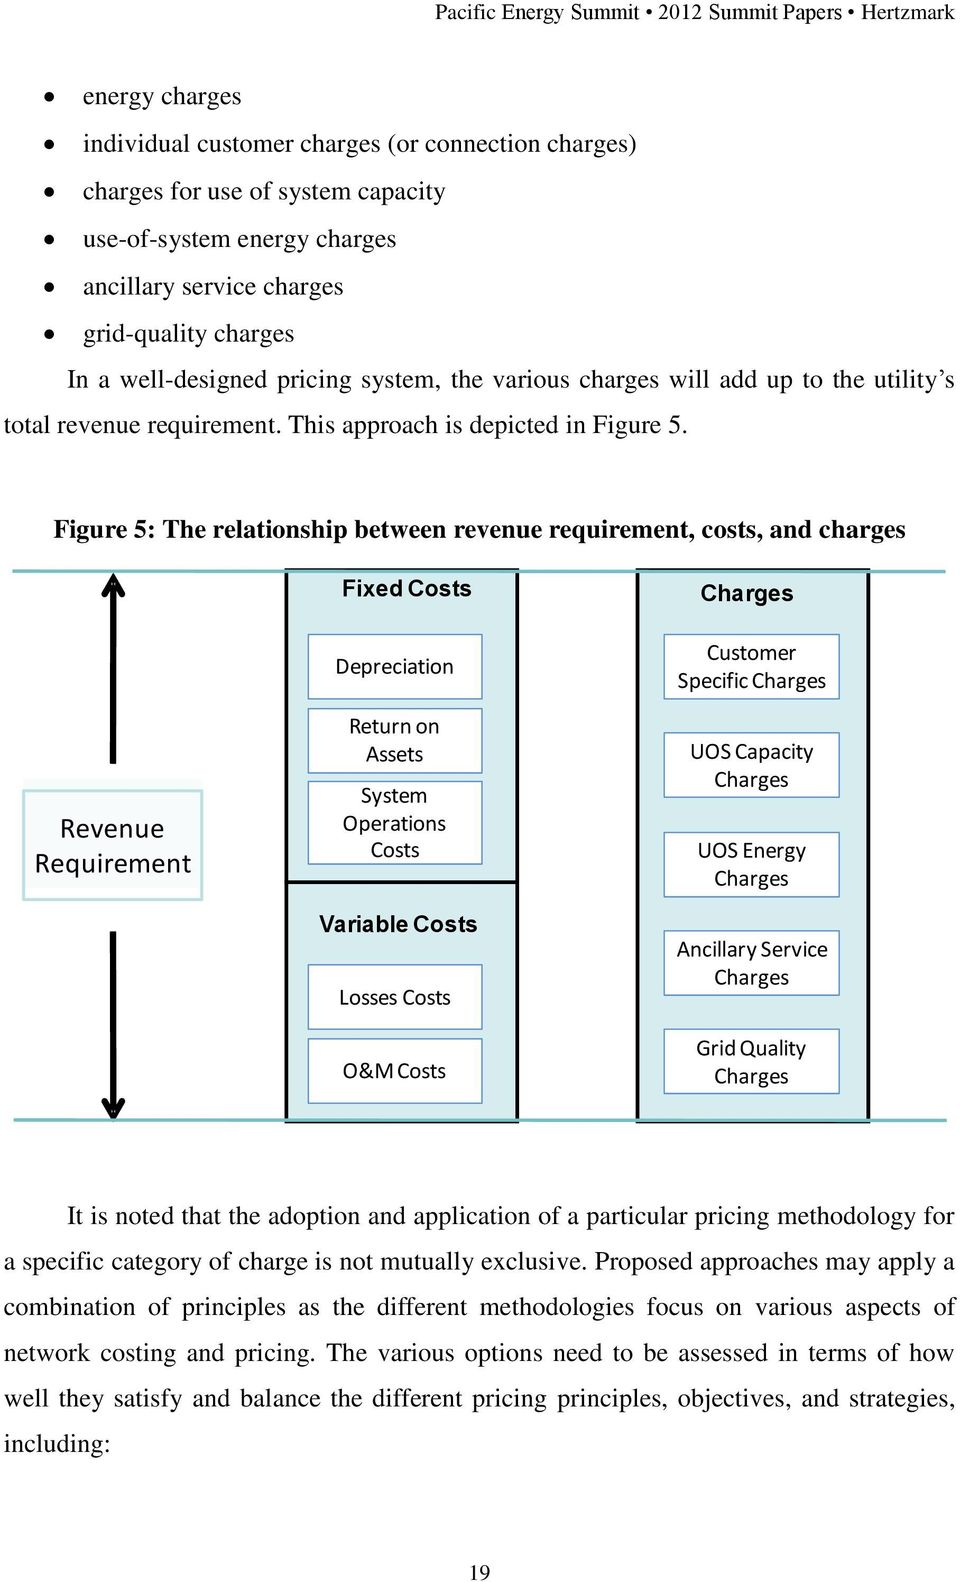 Figure 5: The relationship between revenue requirement, costs, and charges Revenue Requirement Fixed Costs Depreciation Return on Assets System Operations Costs Variable Costs Losses Costs O&M Costs